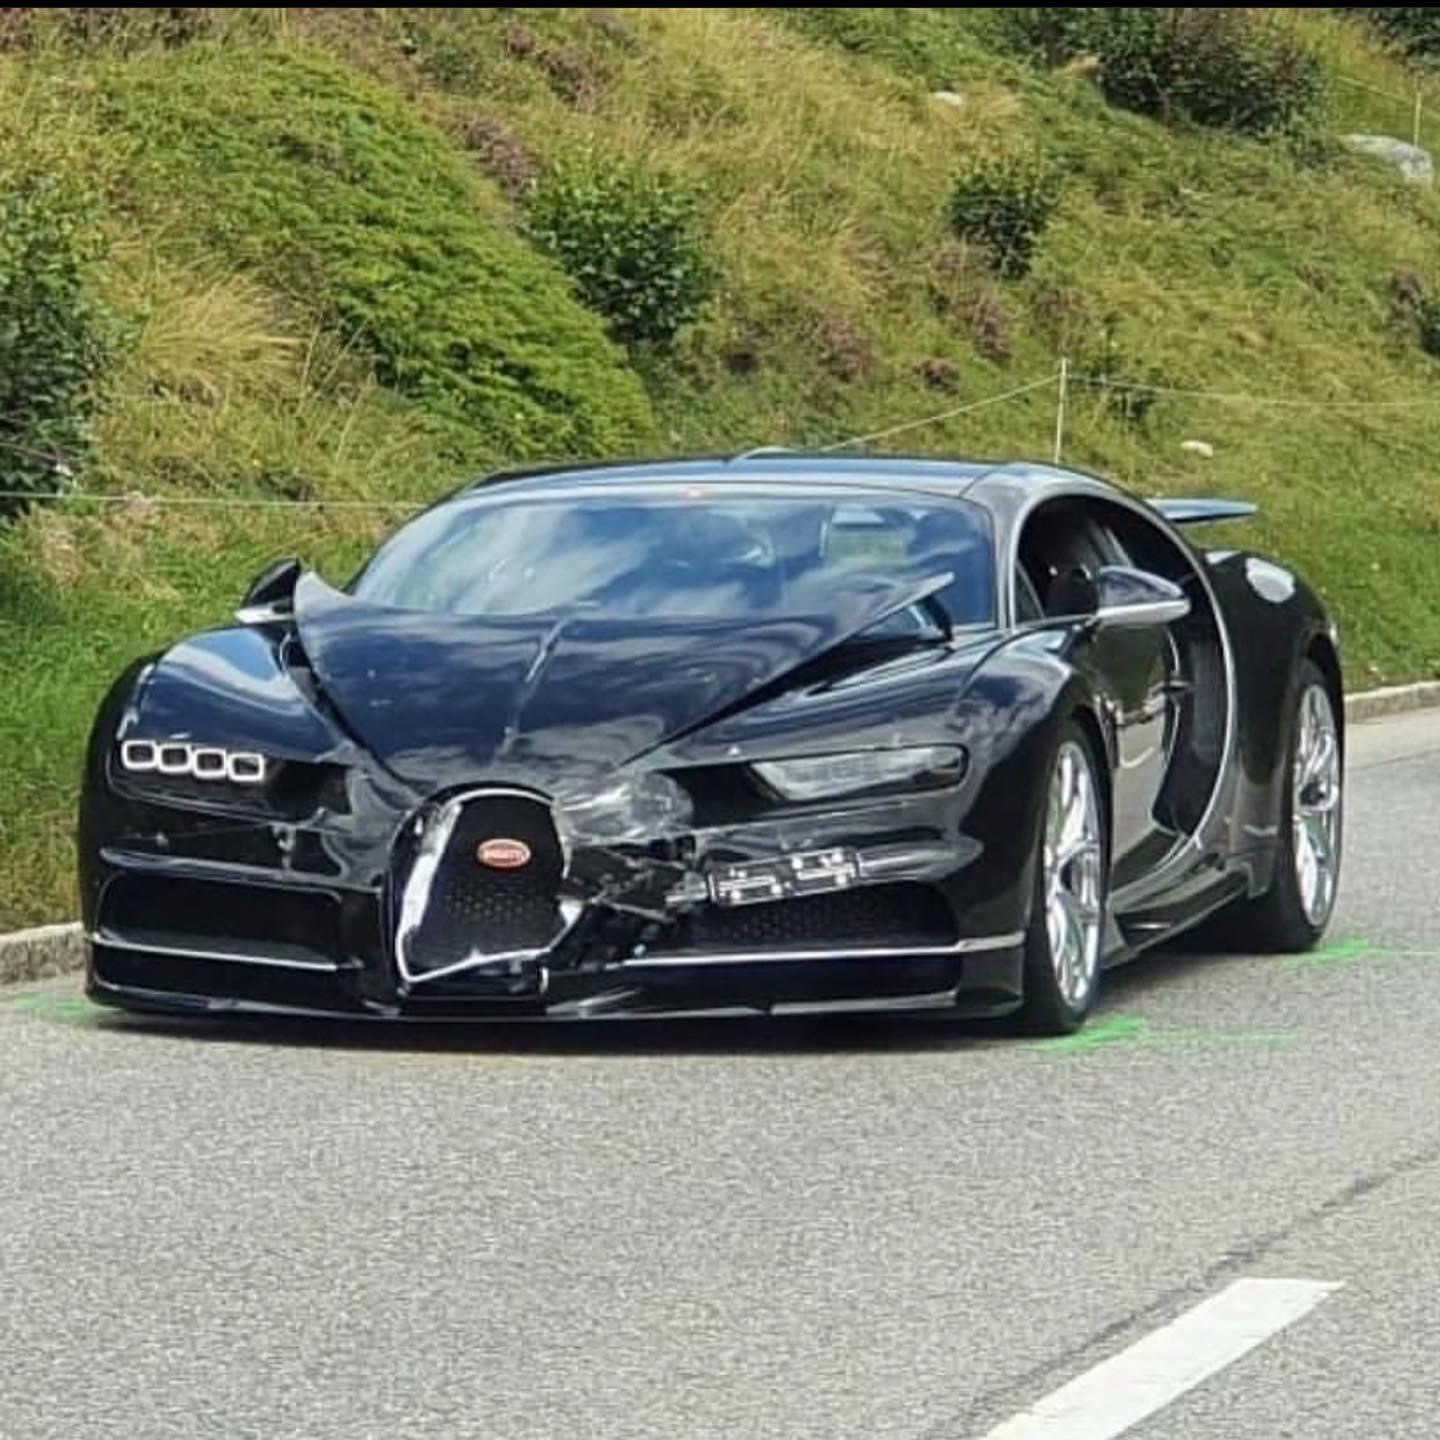 Bugatti Chiron Crashes into Porsche 991 on Mountain Road